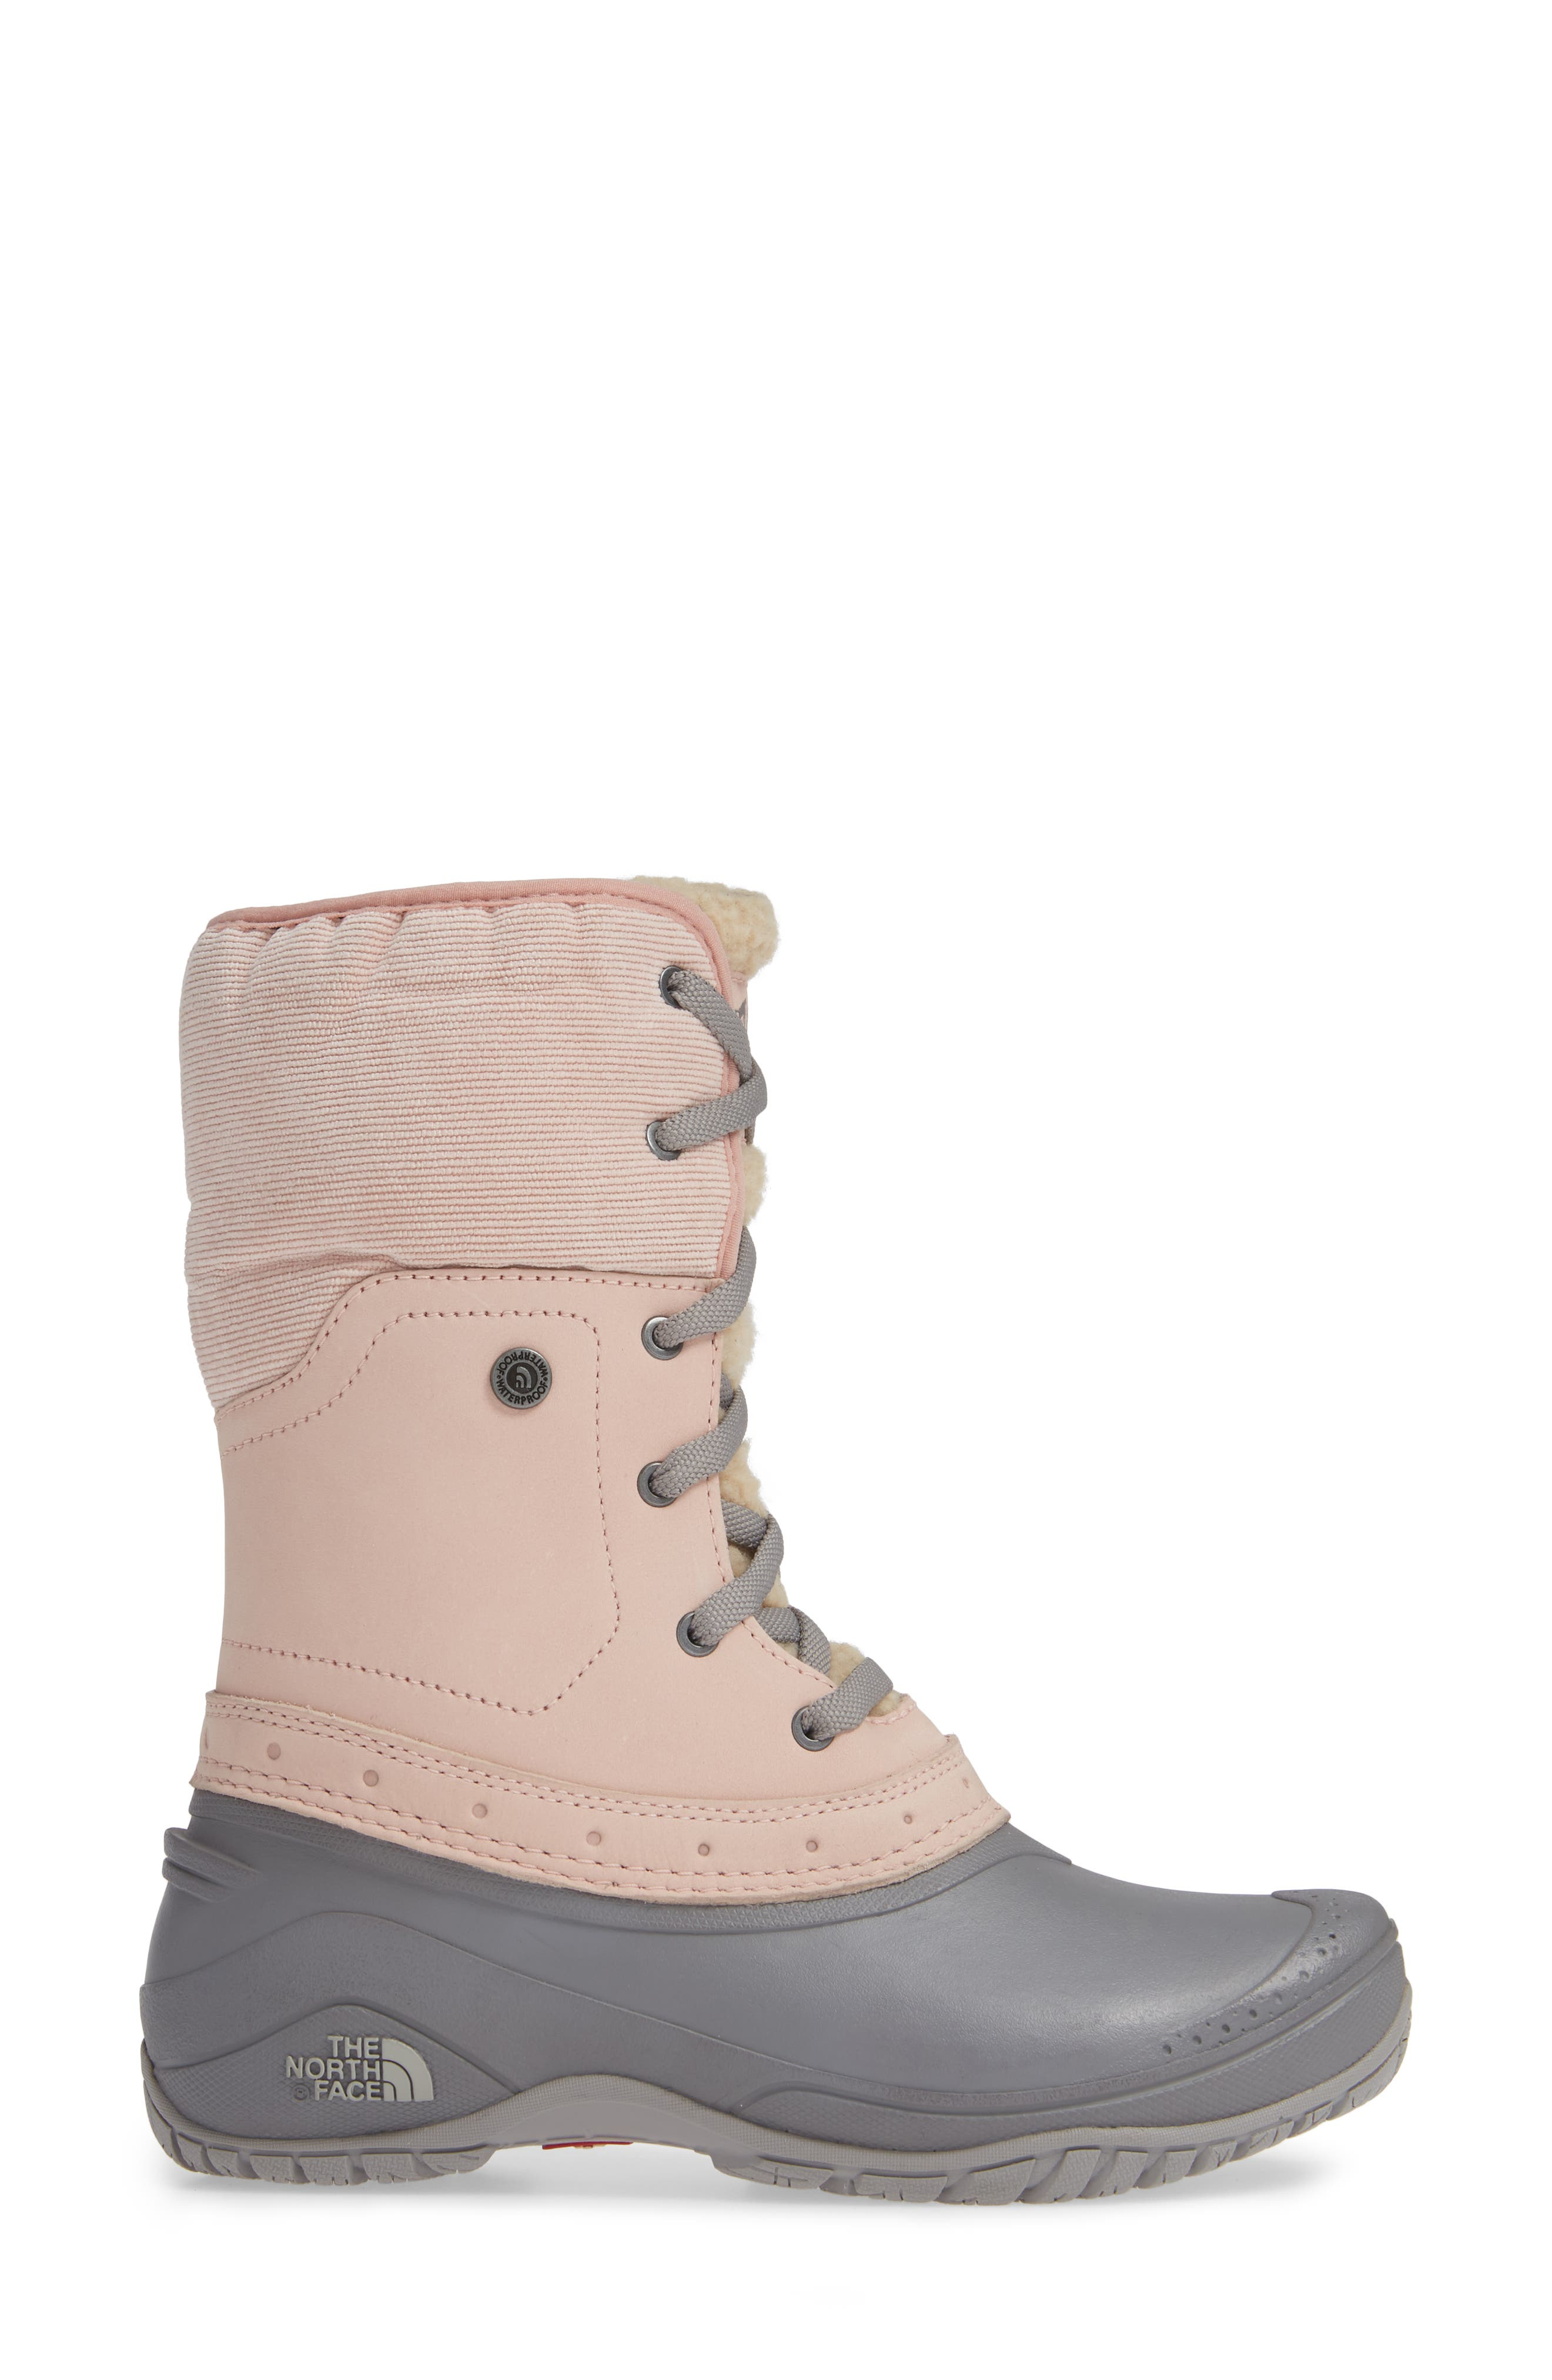 Shellista Roll Cuff Waterproof Insulated Winter Boot,                             Alternate thumbnail 3, color,                             MISTY ROSE/ Q-SILVER GREY